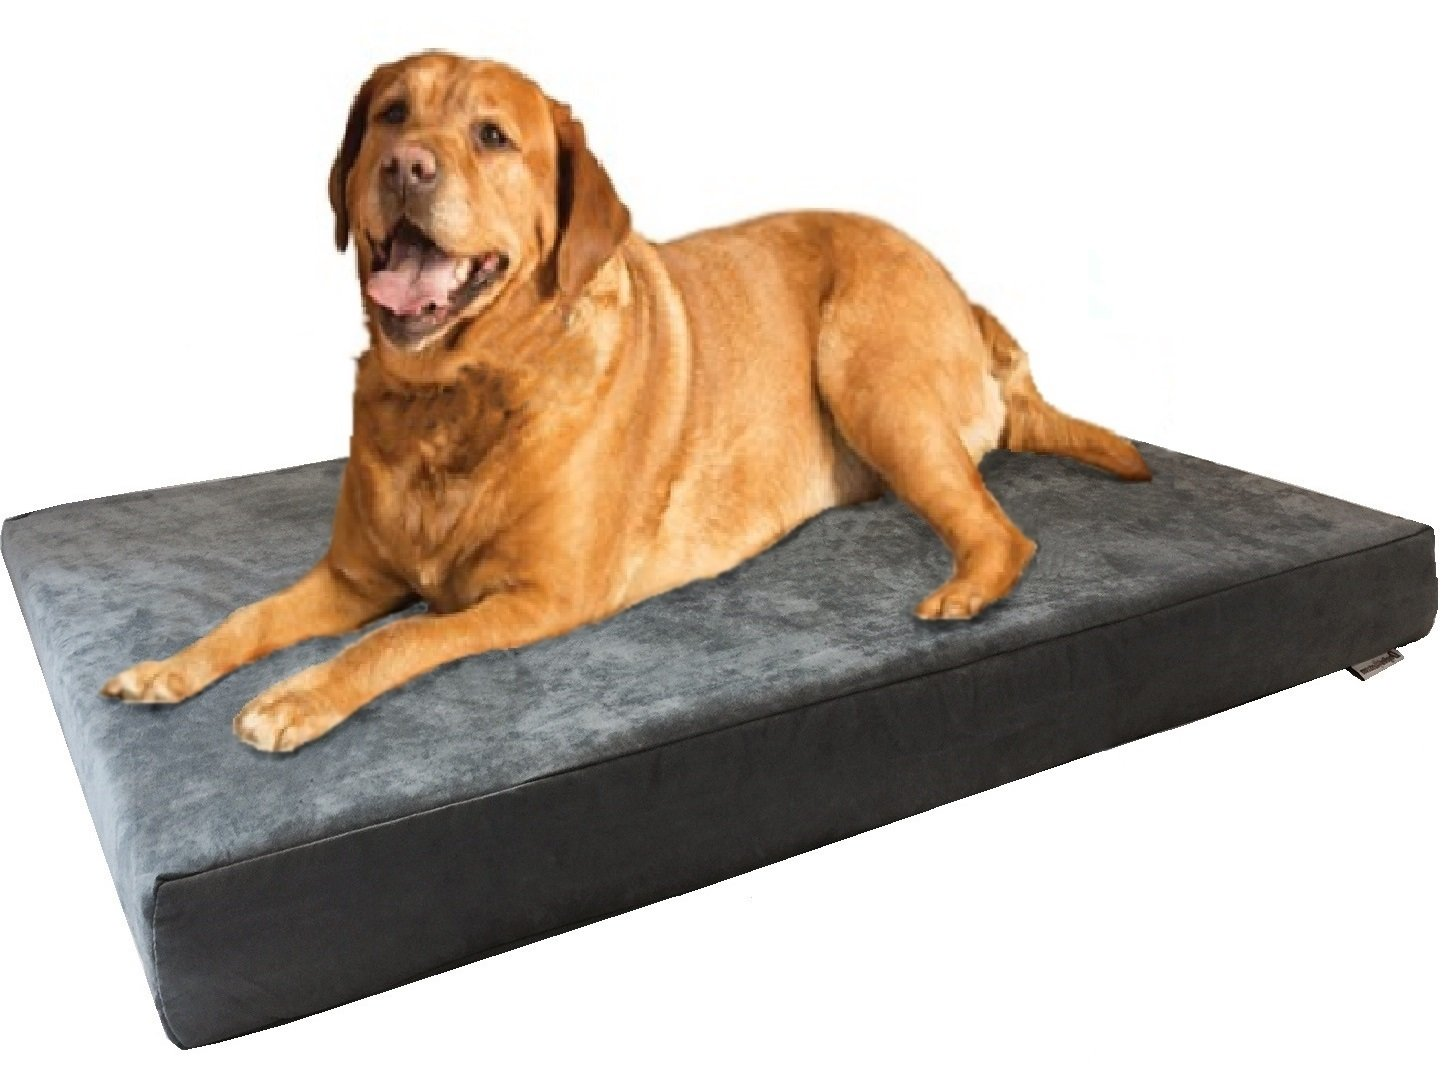 Dogbed4less Waterproof Orthopedic Cooling Memory Dog Bed for Large and Extra Large Dogs, Suede Gray Color, Jumbo 55X47X4 Inches by dogbed4less